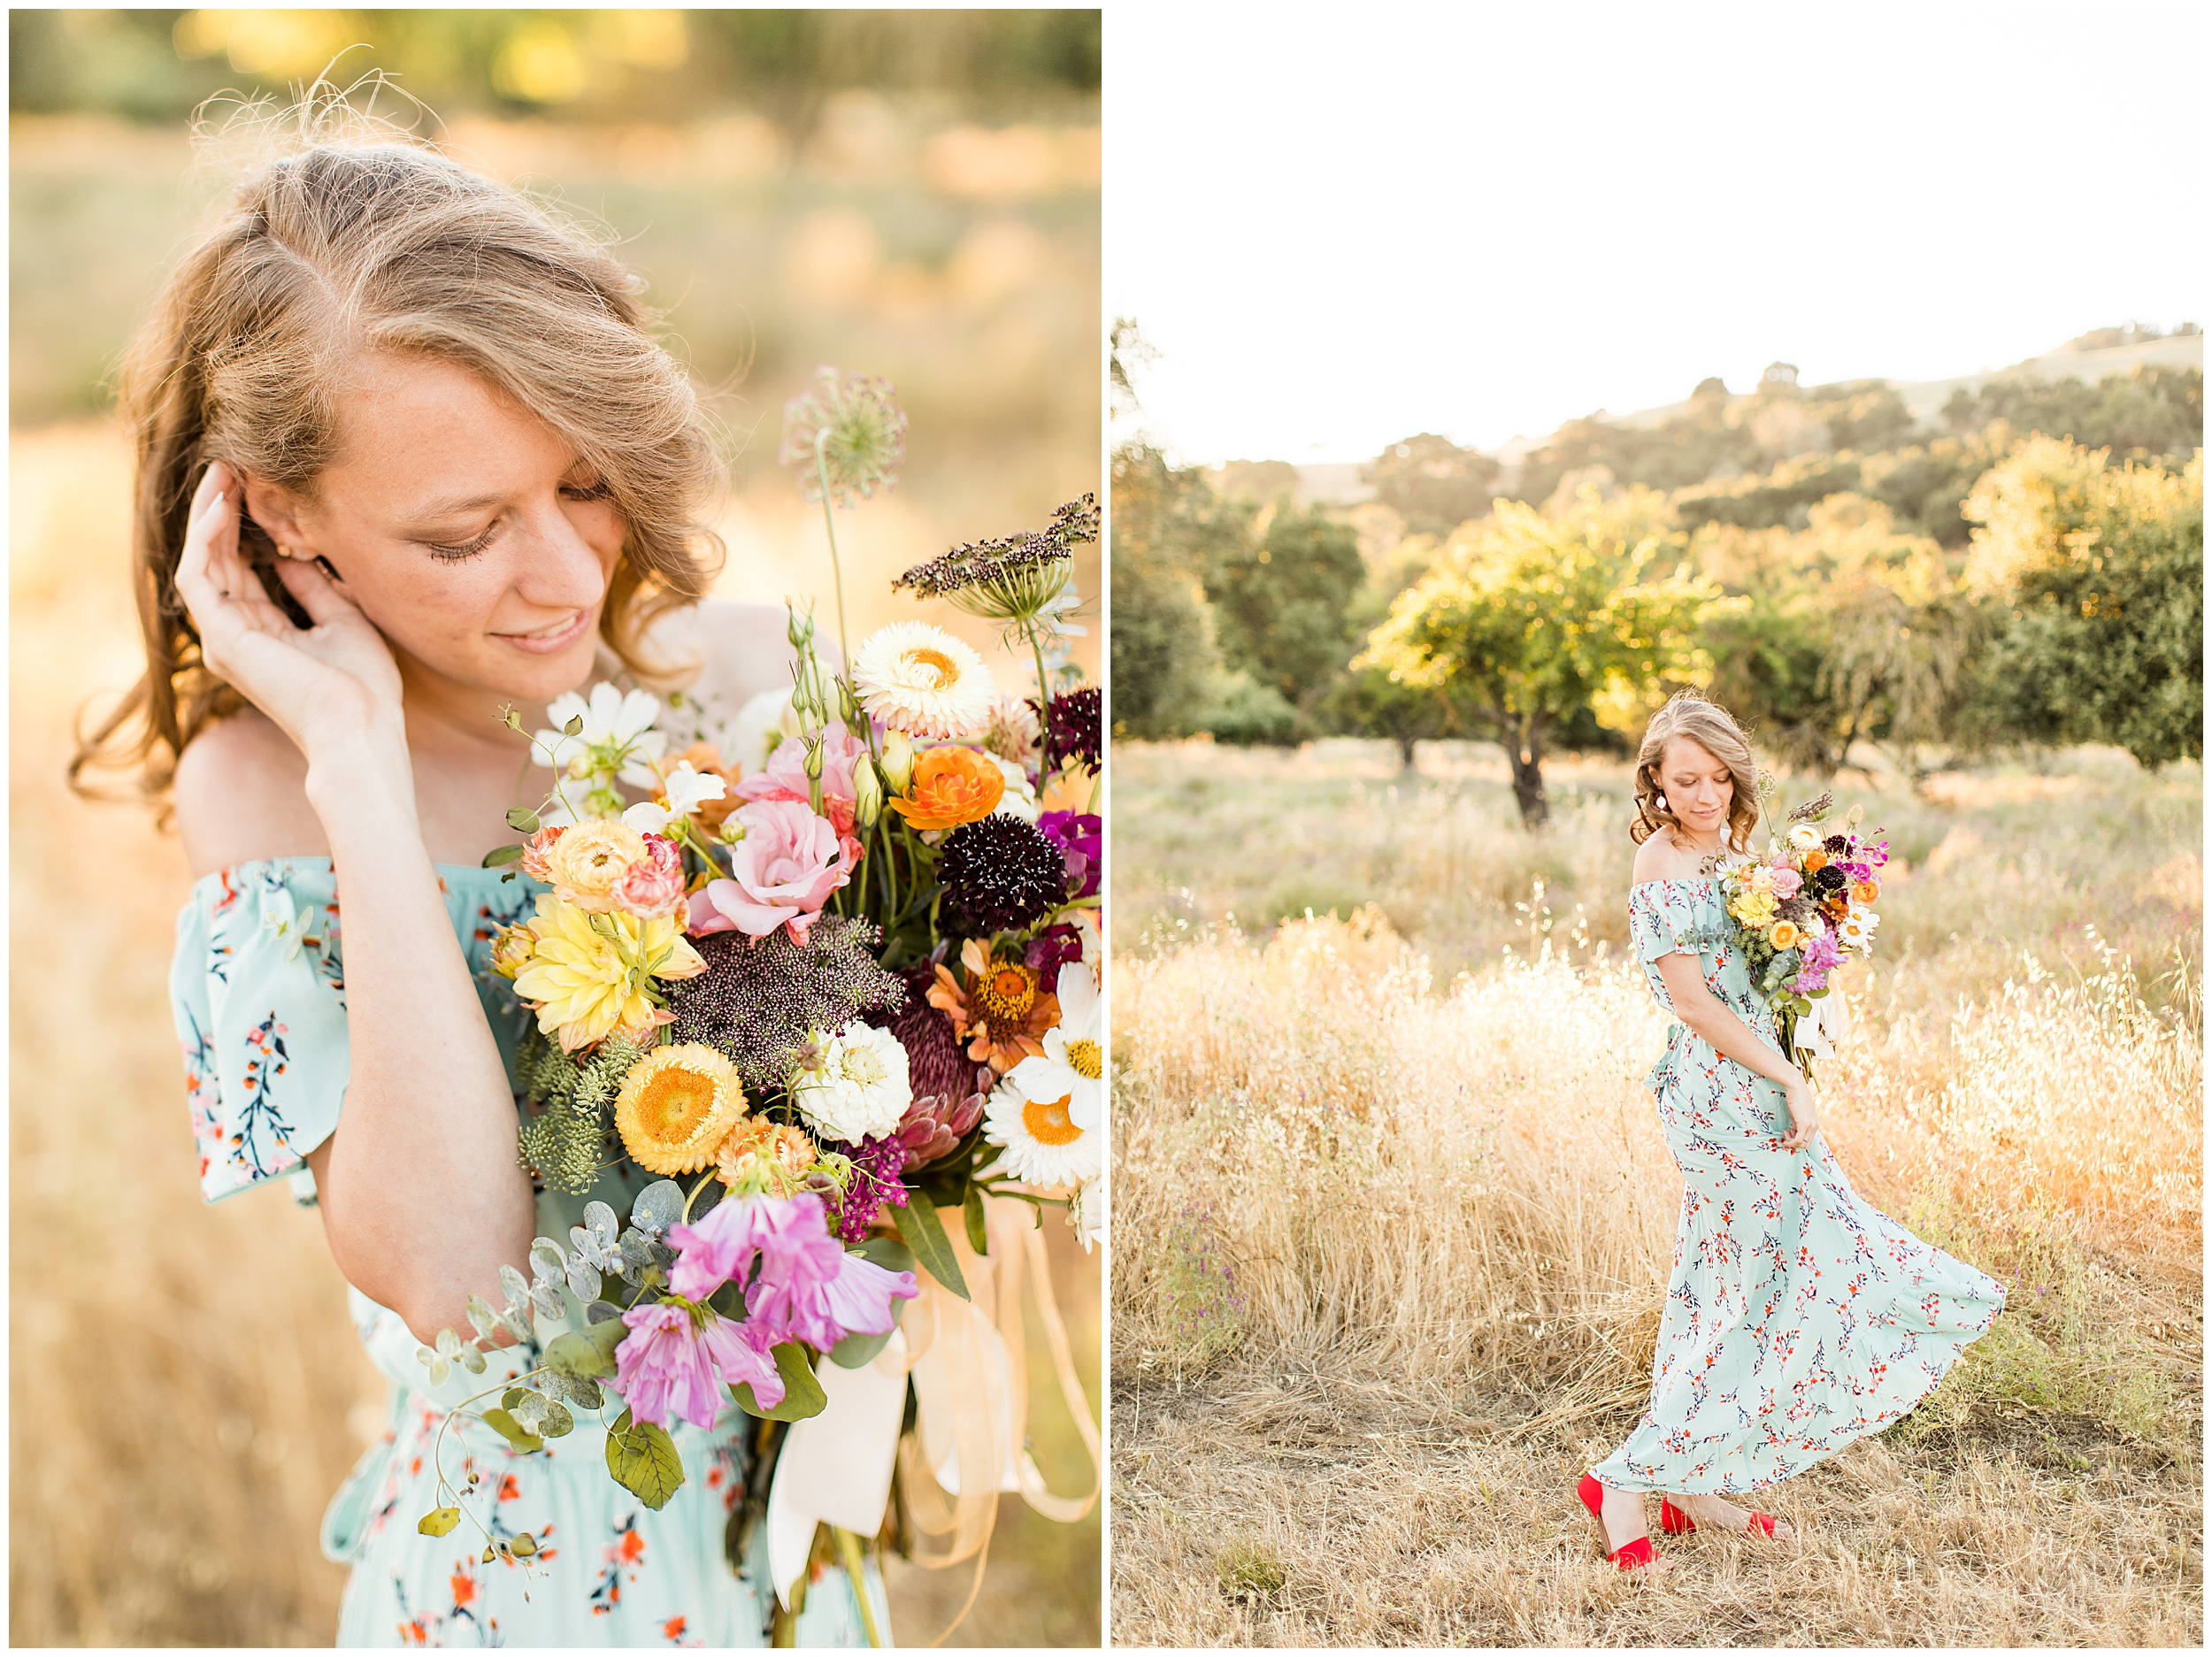 2019 bay area wedding photographer colorful florals flowers styled engagement session Angela Sue Photography_0012.jpg